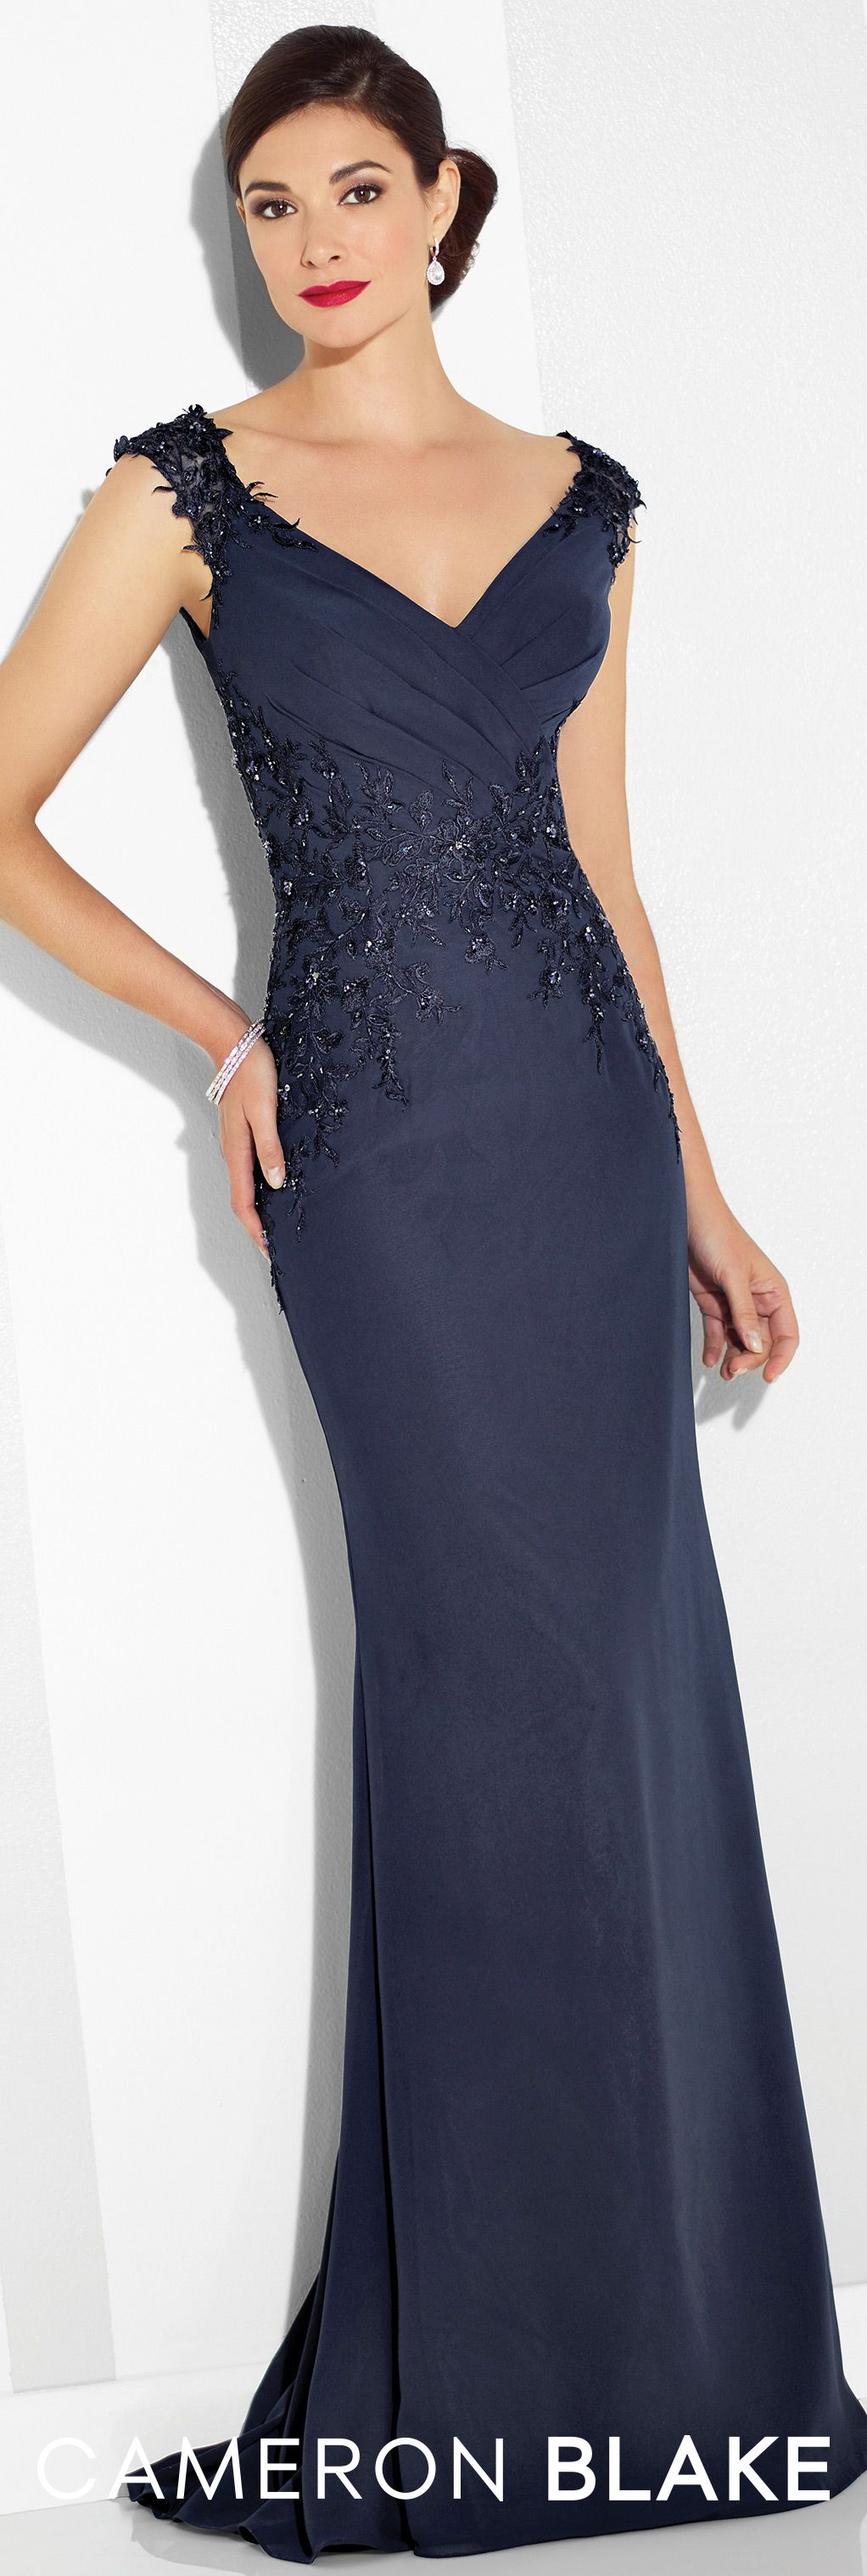 Navy Formal Evening Dresses